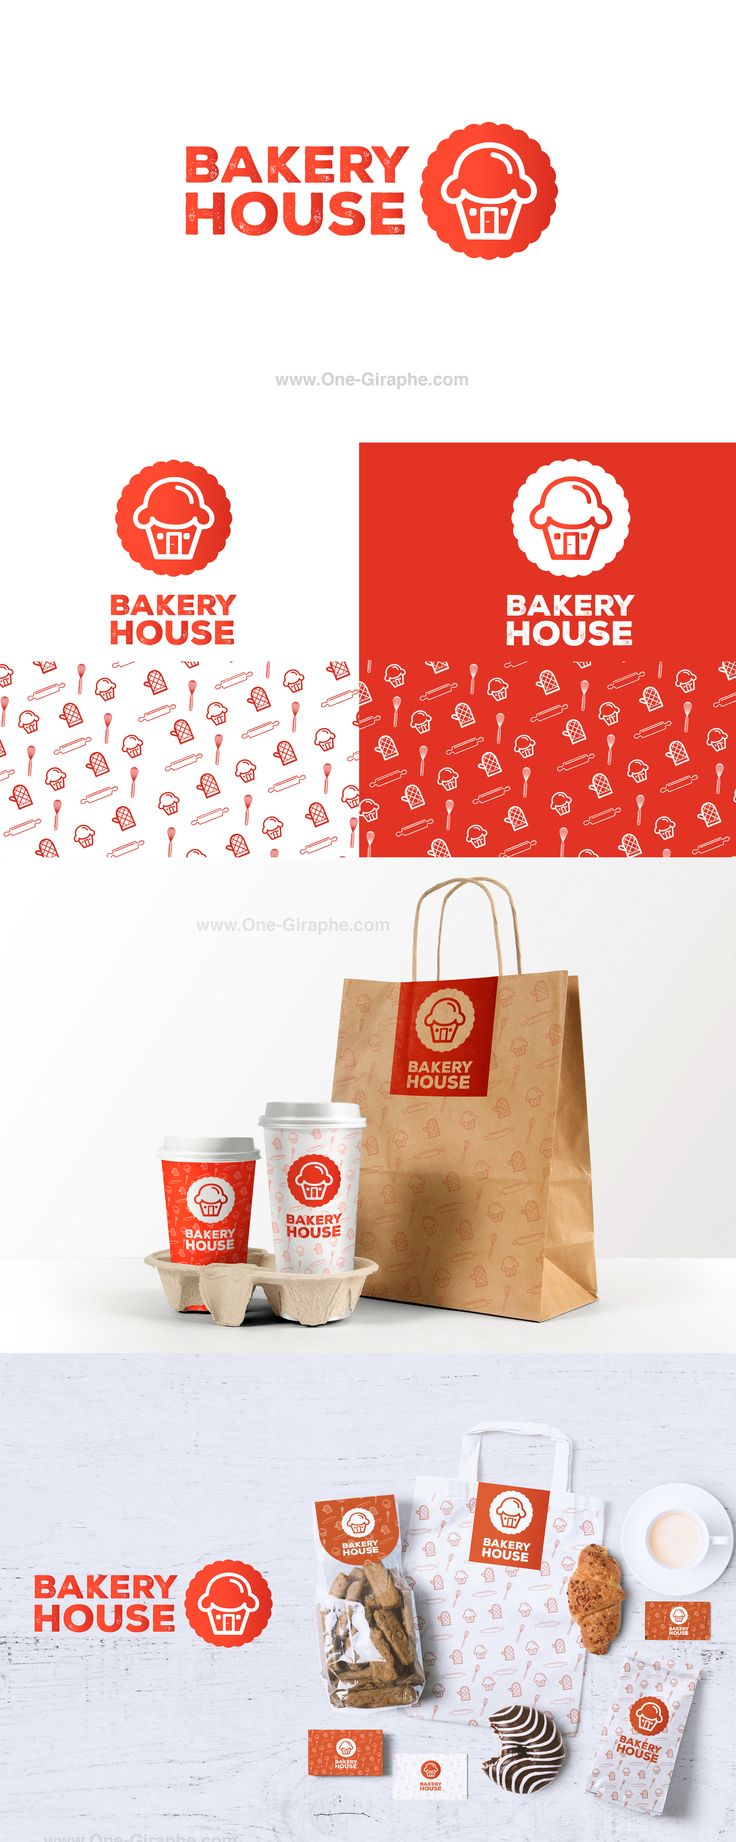 Bakery House -Branding for sale! http://www.one-giraphe.com/prev.php?c=195 #logo…